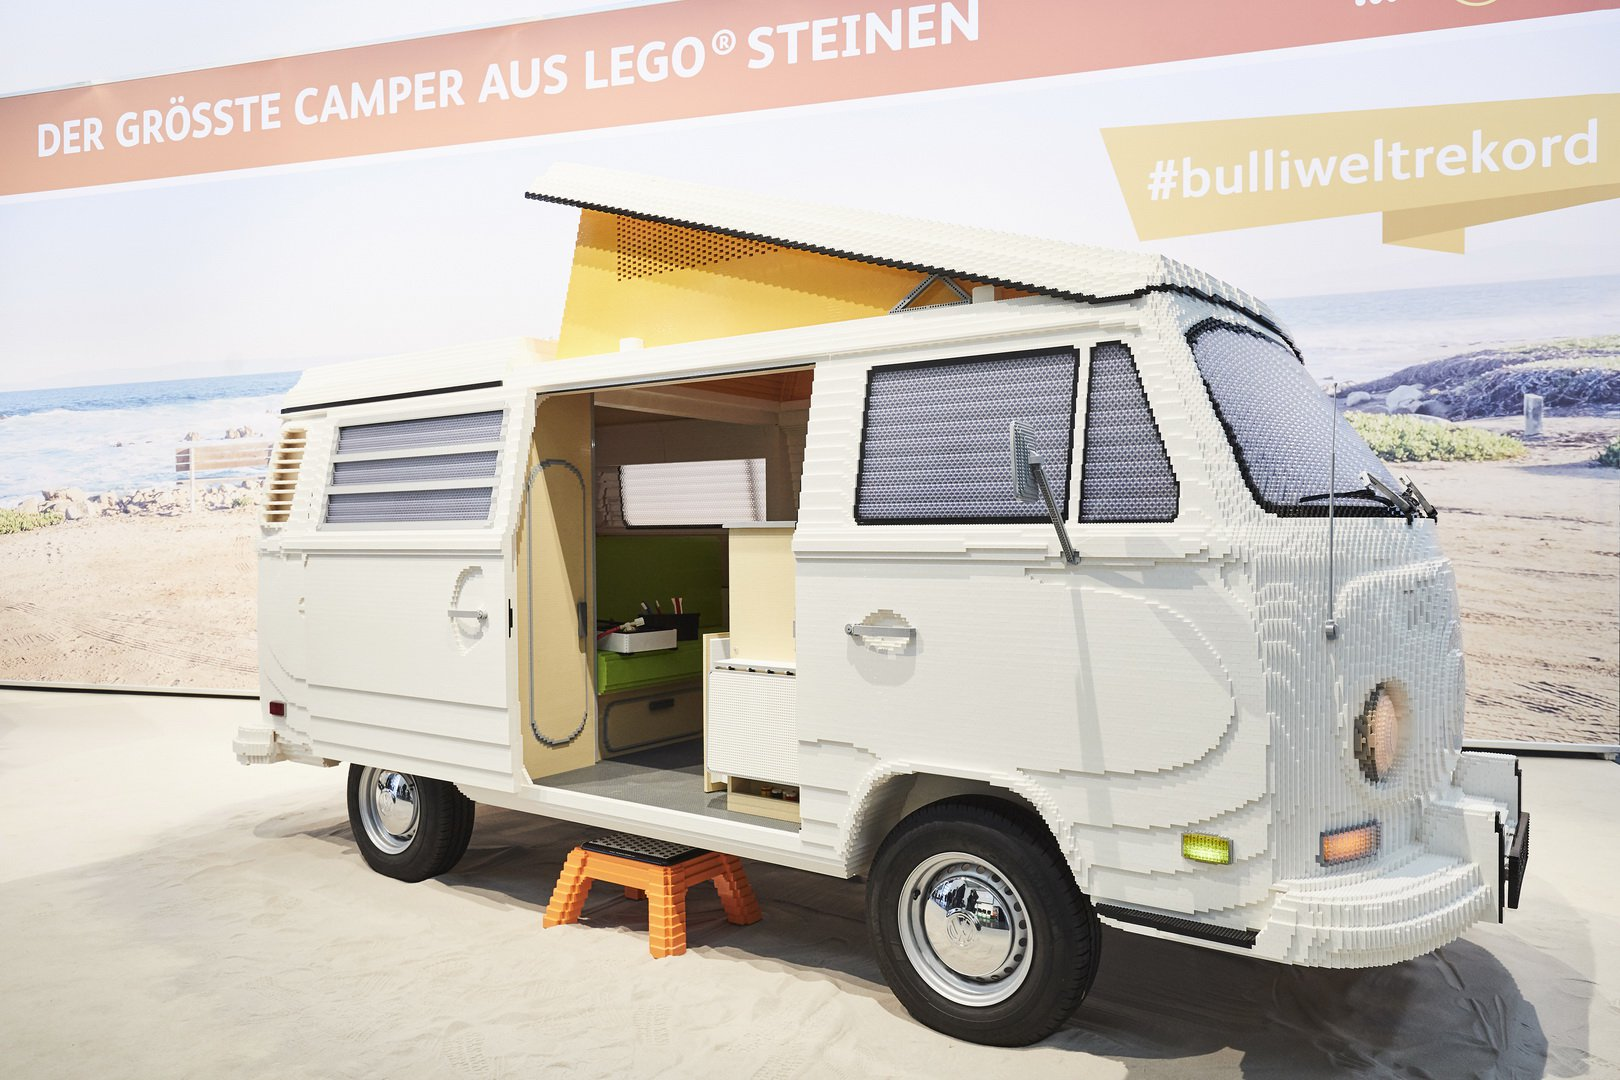 A life-size replica of the Volkswagen T2 van made up of LEGO bricks has made an appearance at the ongoing 2019 Travel and Leisure Fair in Munich, Germany